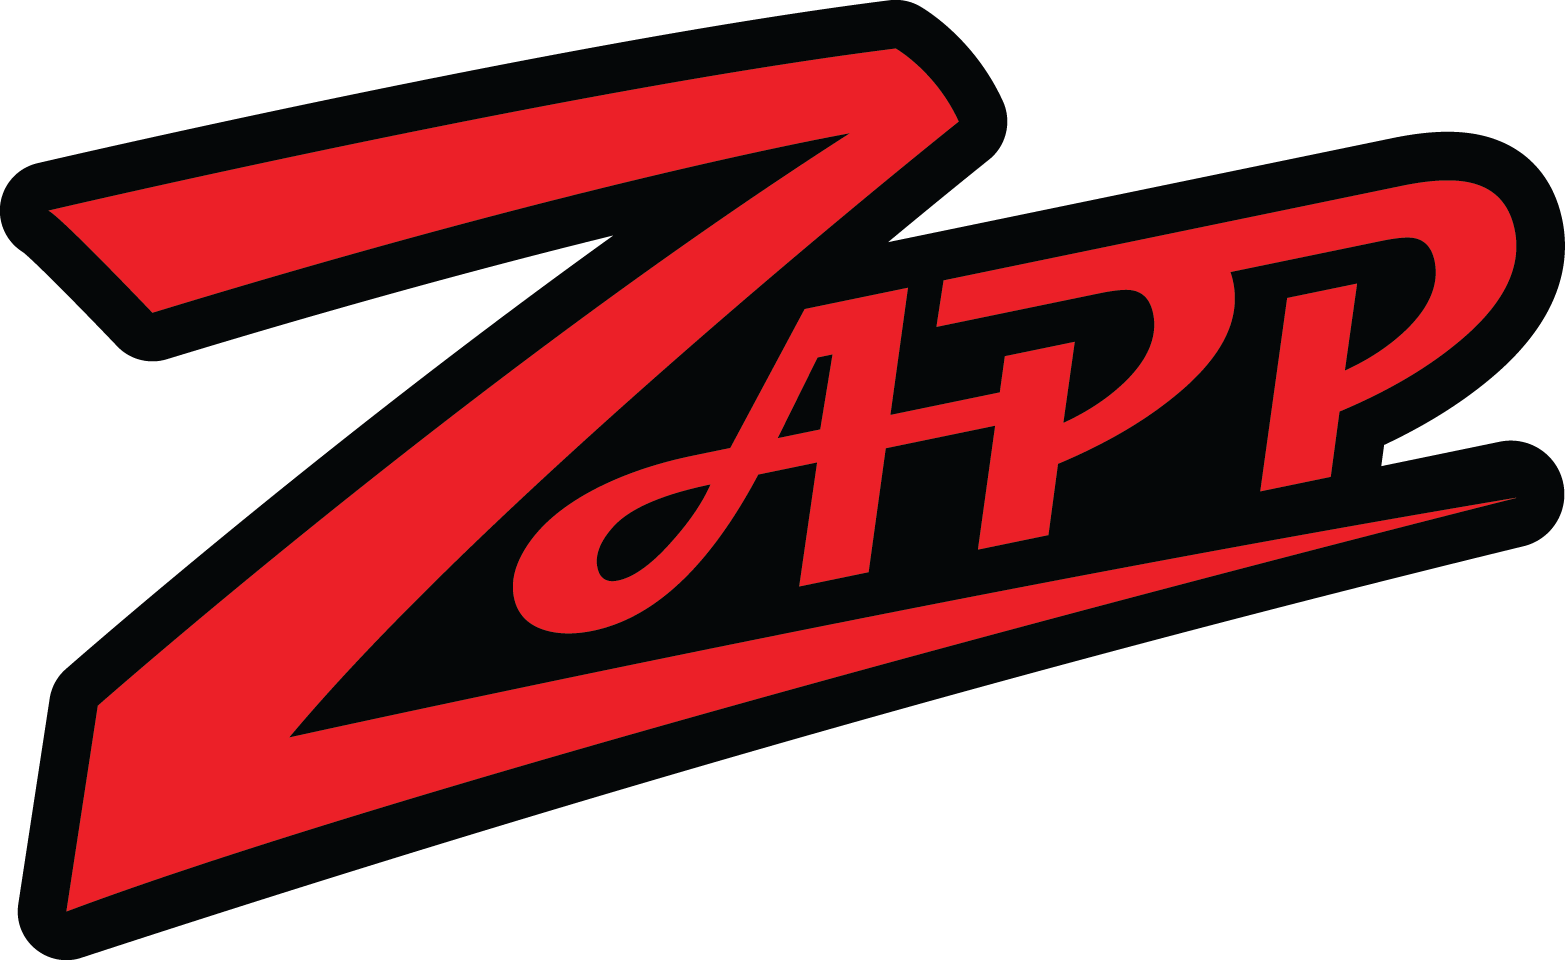 Former GM Executive Joins Zapp Scooters As Board Advisor